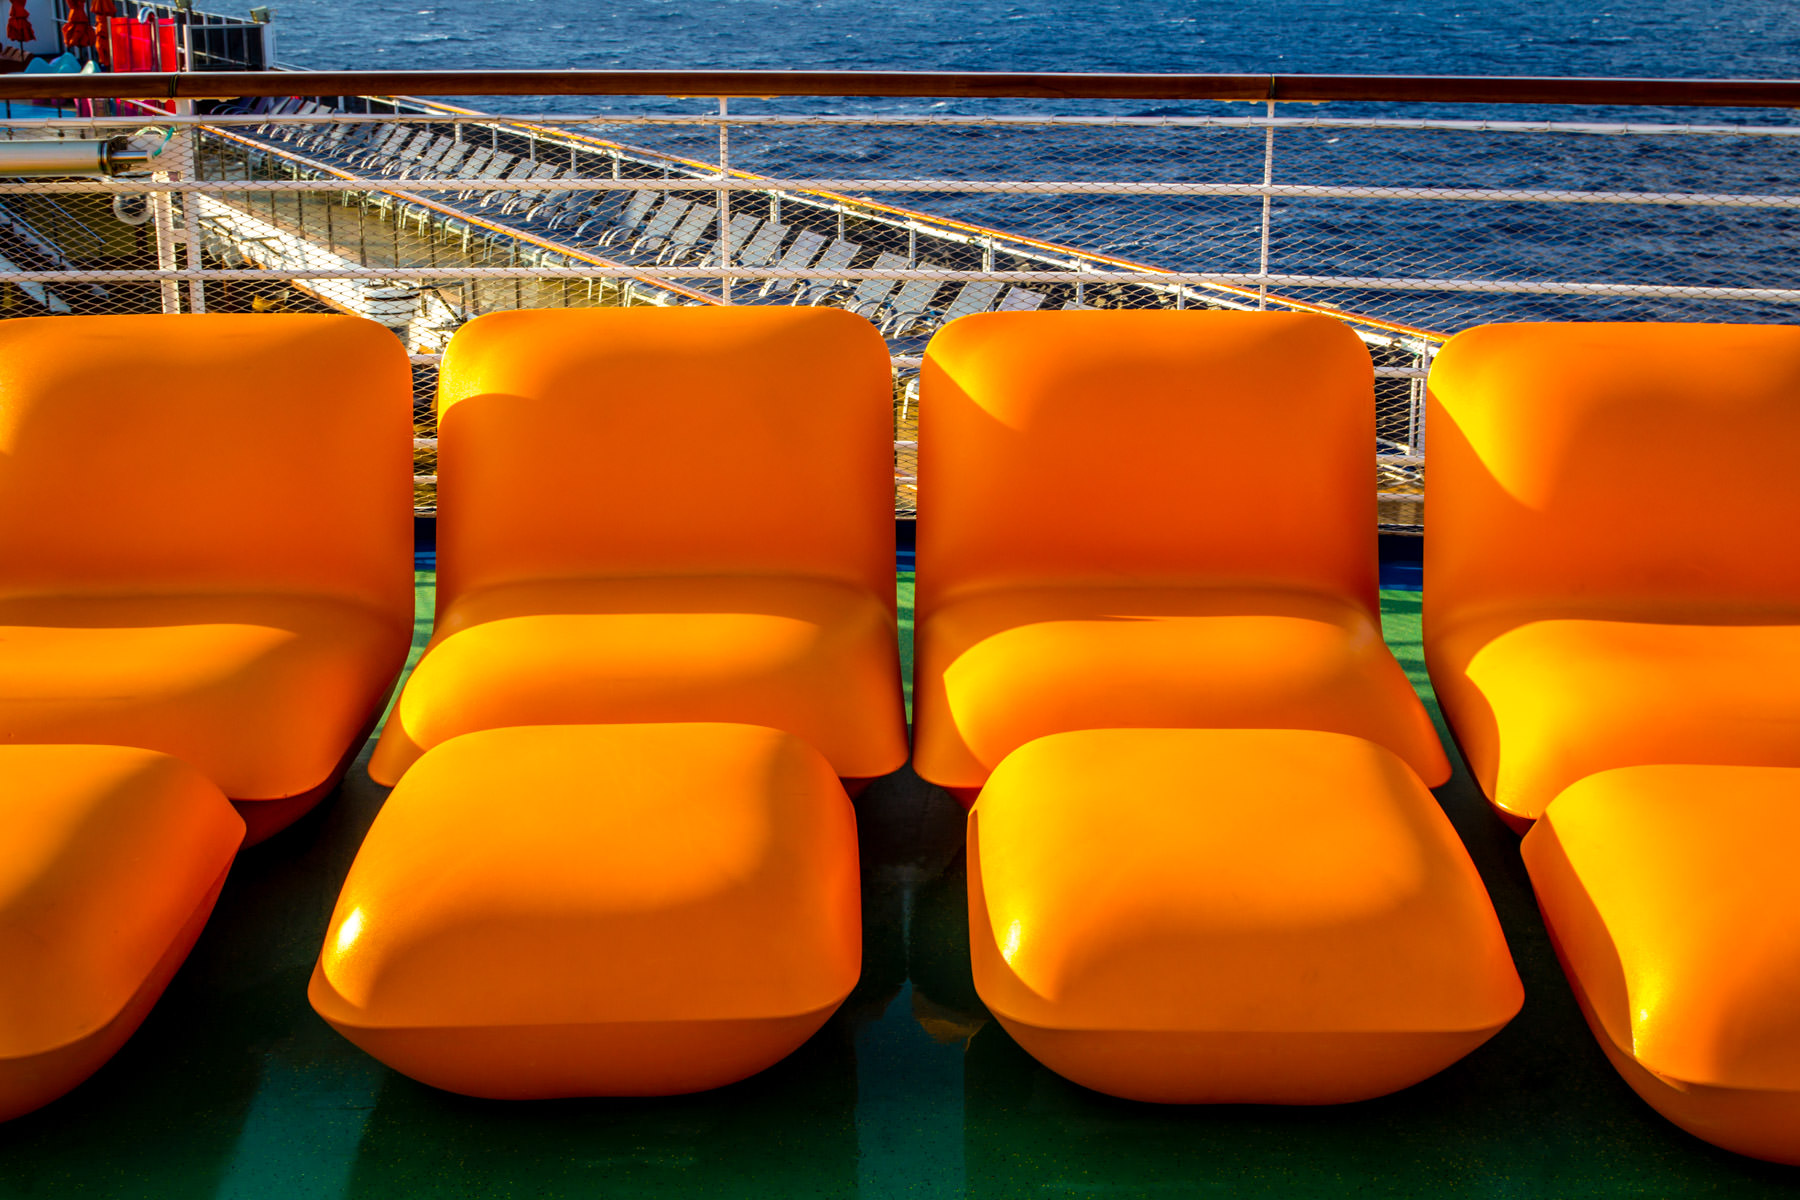 Unique chaise longues aboard the Carnival Magic.